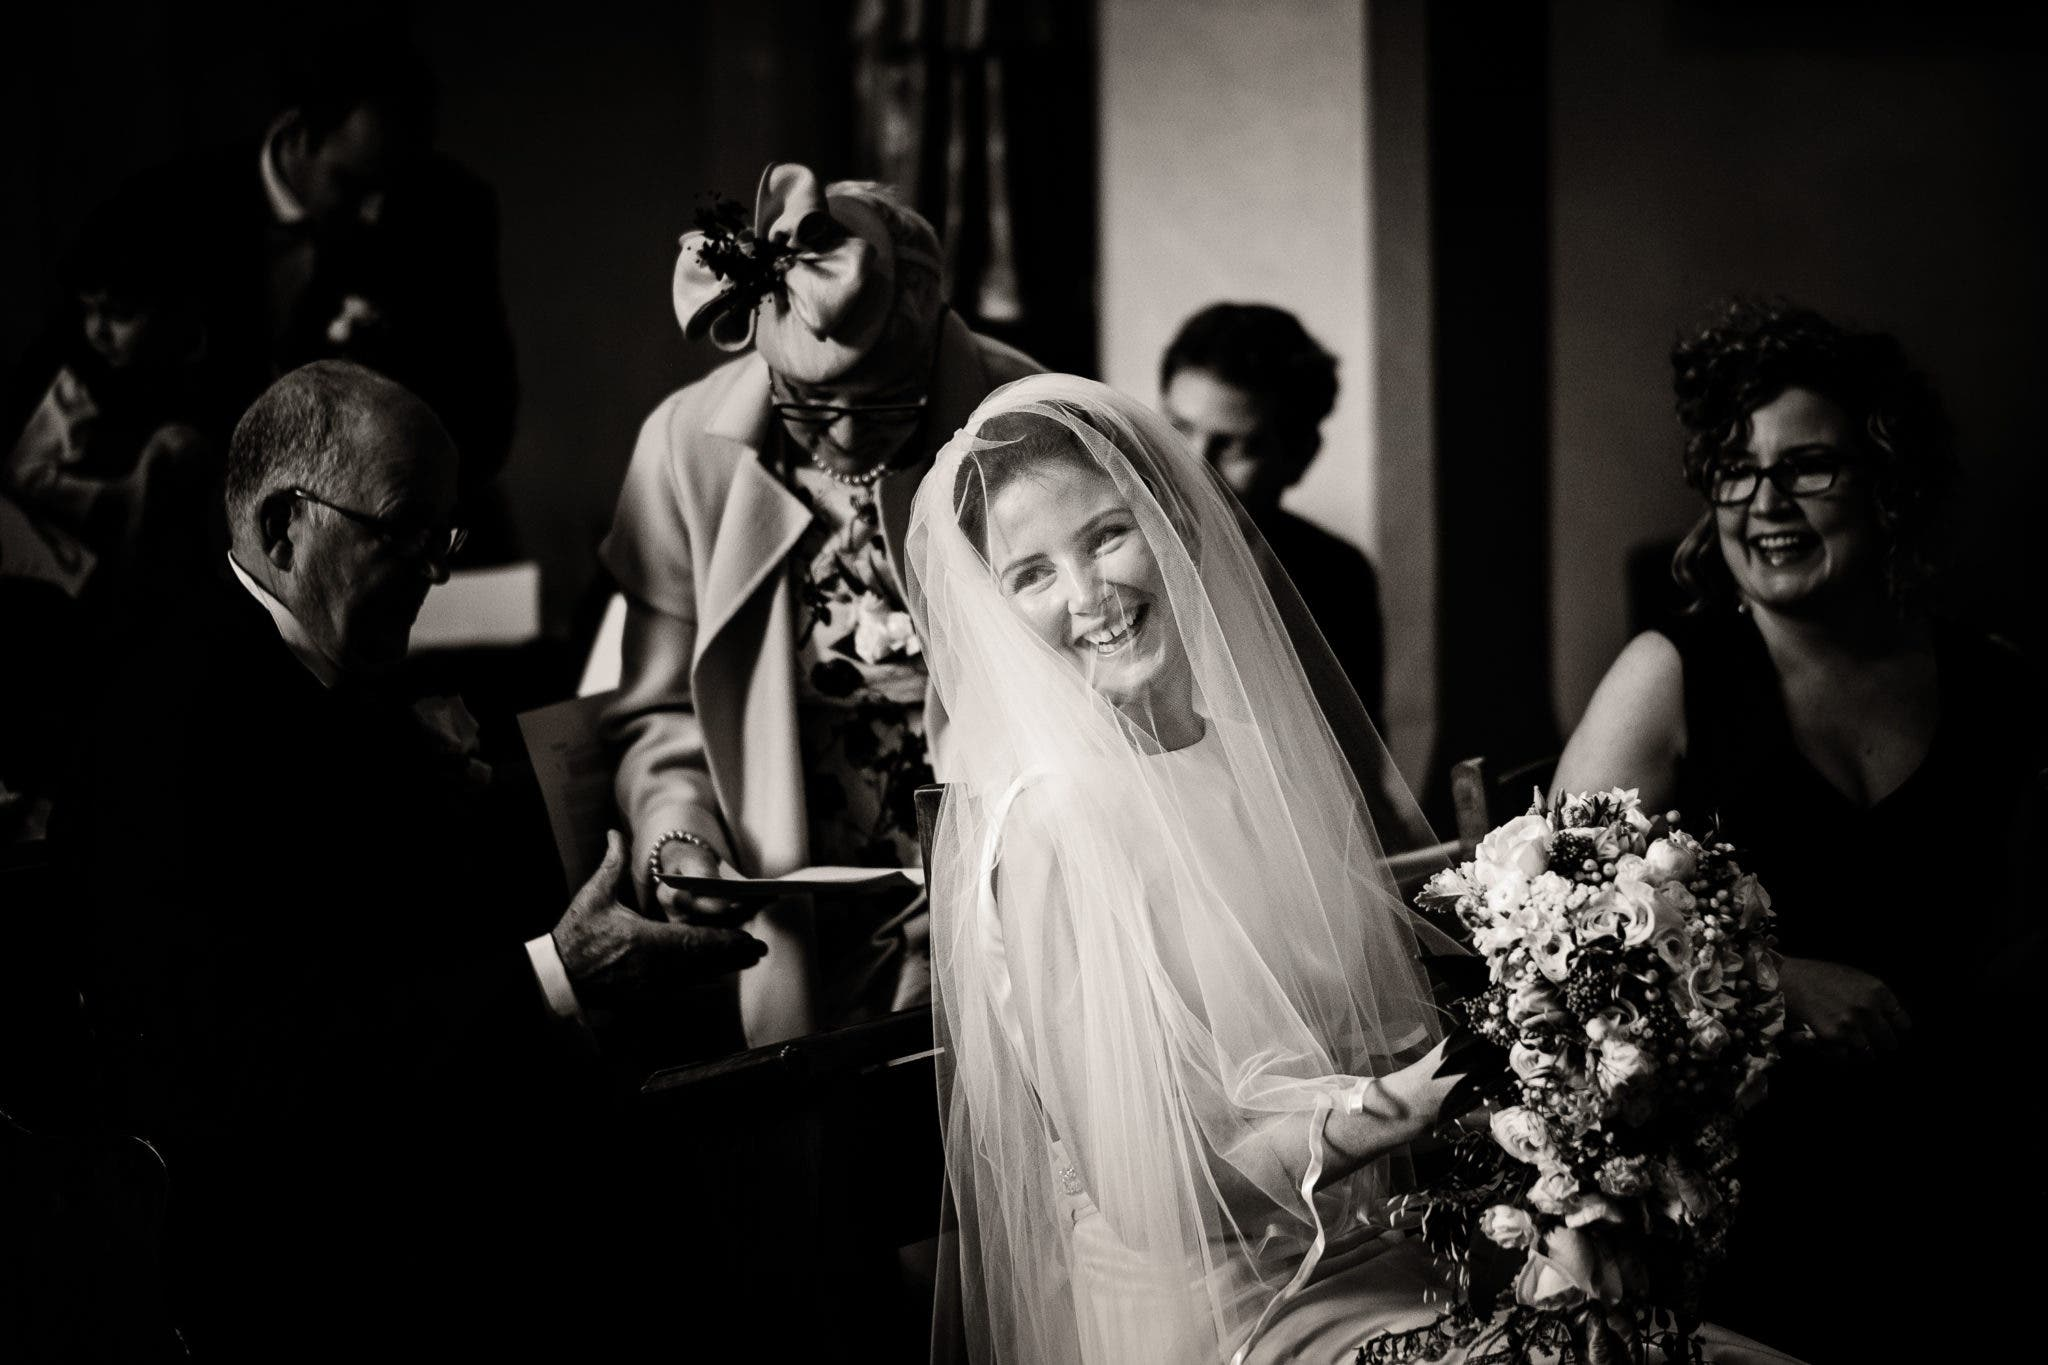 Photographer Kevin Mullins Talks About His Documentary Style Approach to Weddings